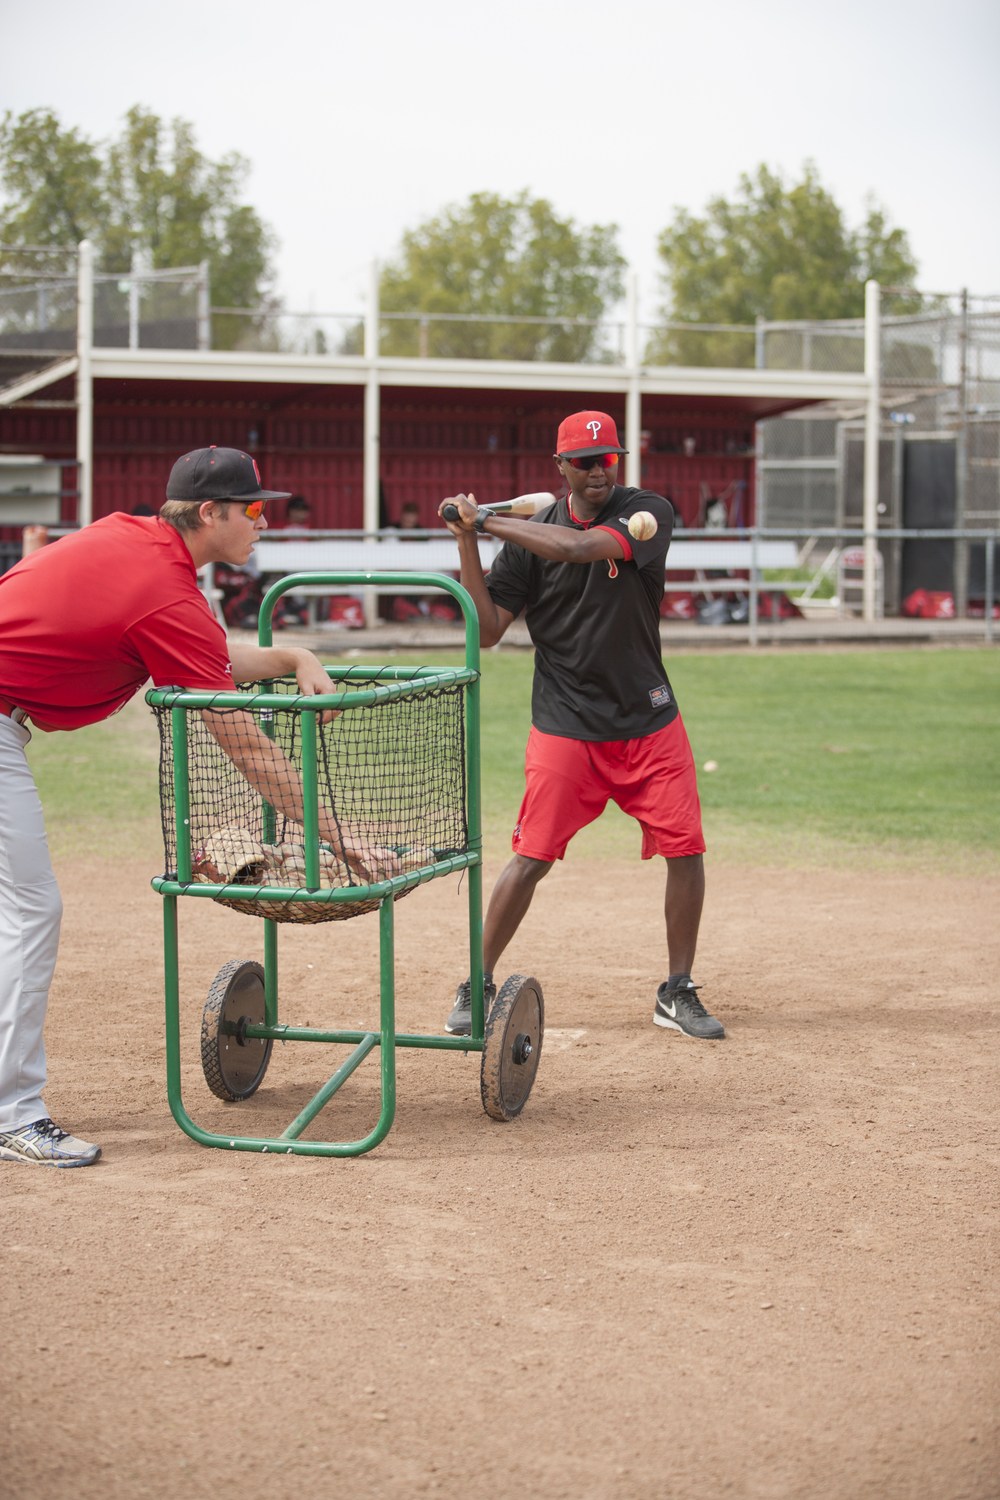 Devin Joblove and assistant coach Tyrus Powe hit balls for infielders to catch during a fielding drill on Tuesday, March 10, 2015. Woodland Hills, Calif.  Read the full story  here